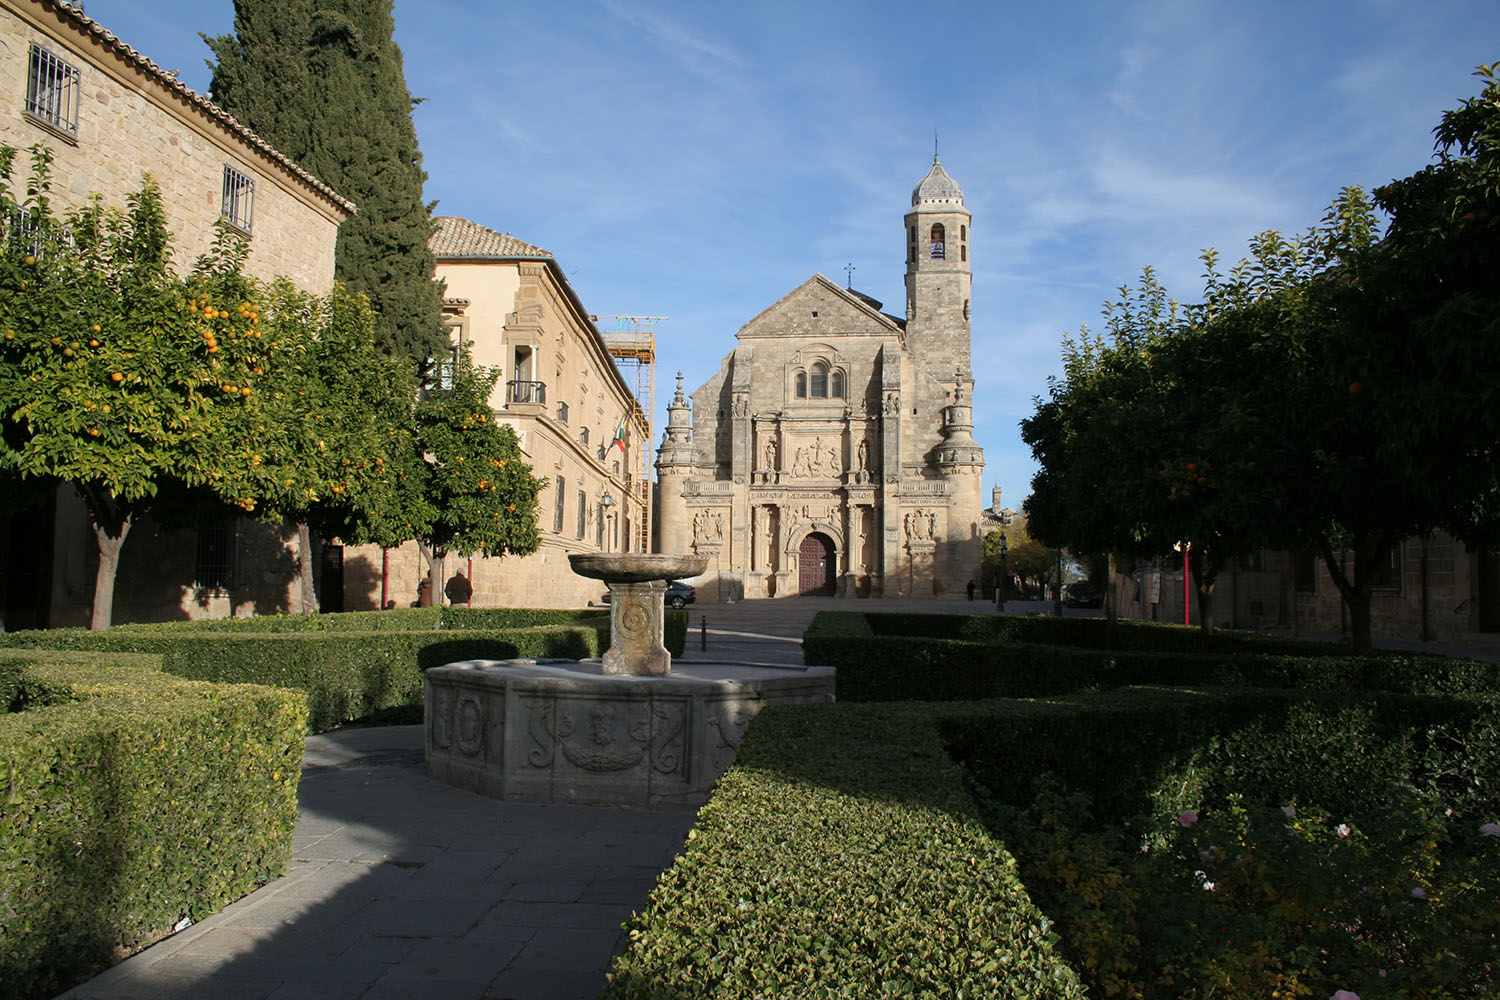 TWO WONDERS OF THE RENAISSANCE: ÚBEDA AND BAEZA